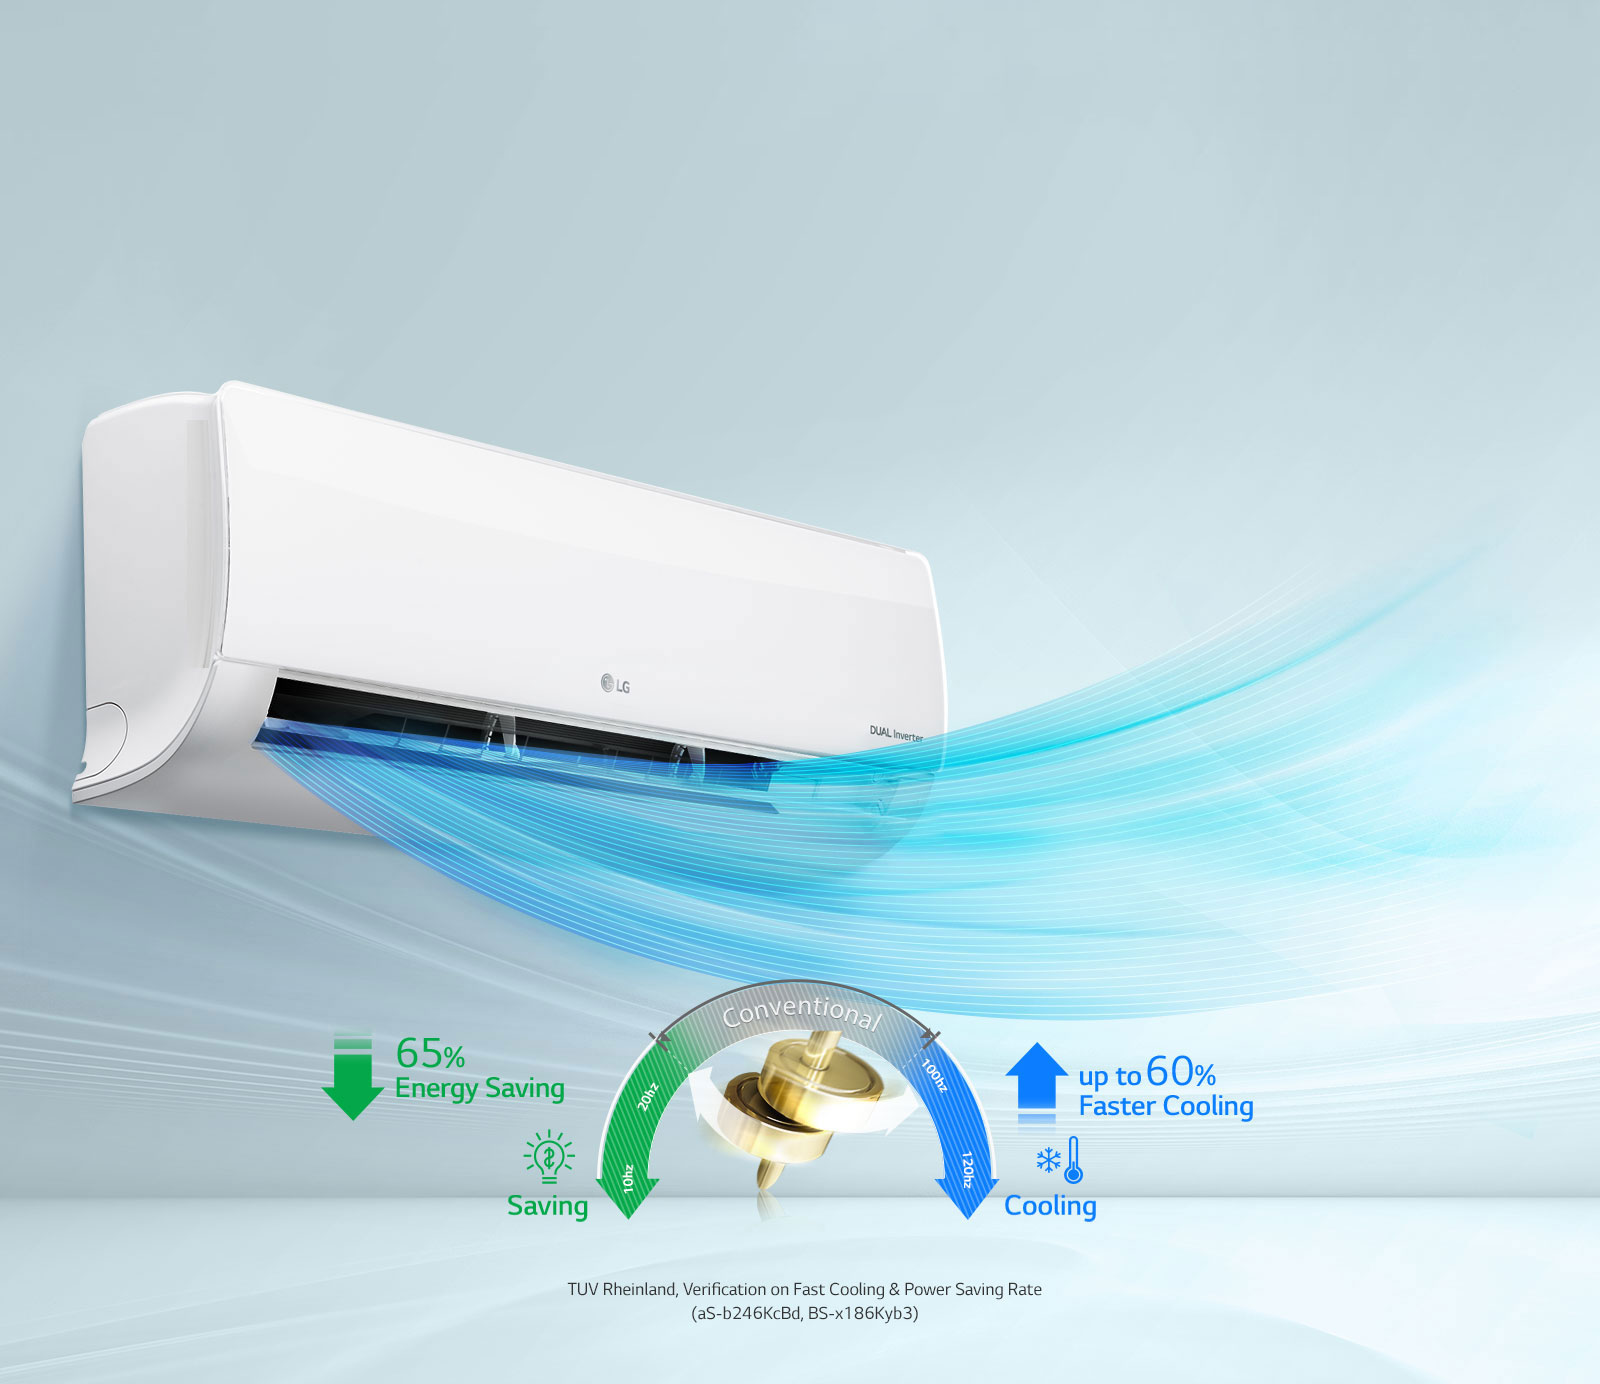 Fast Cooling & Energy Saving1